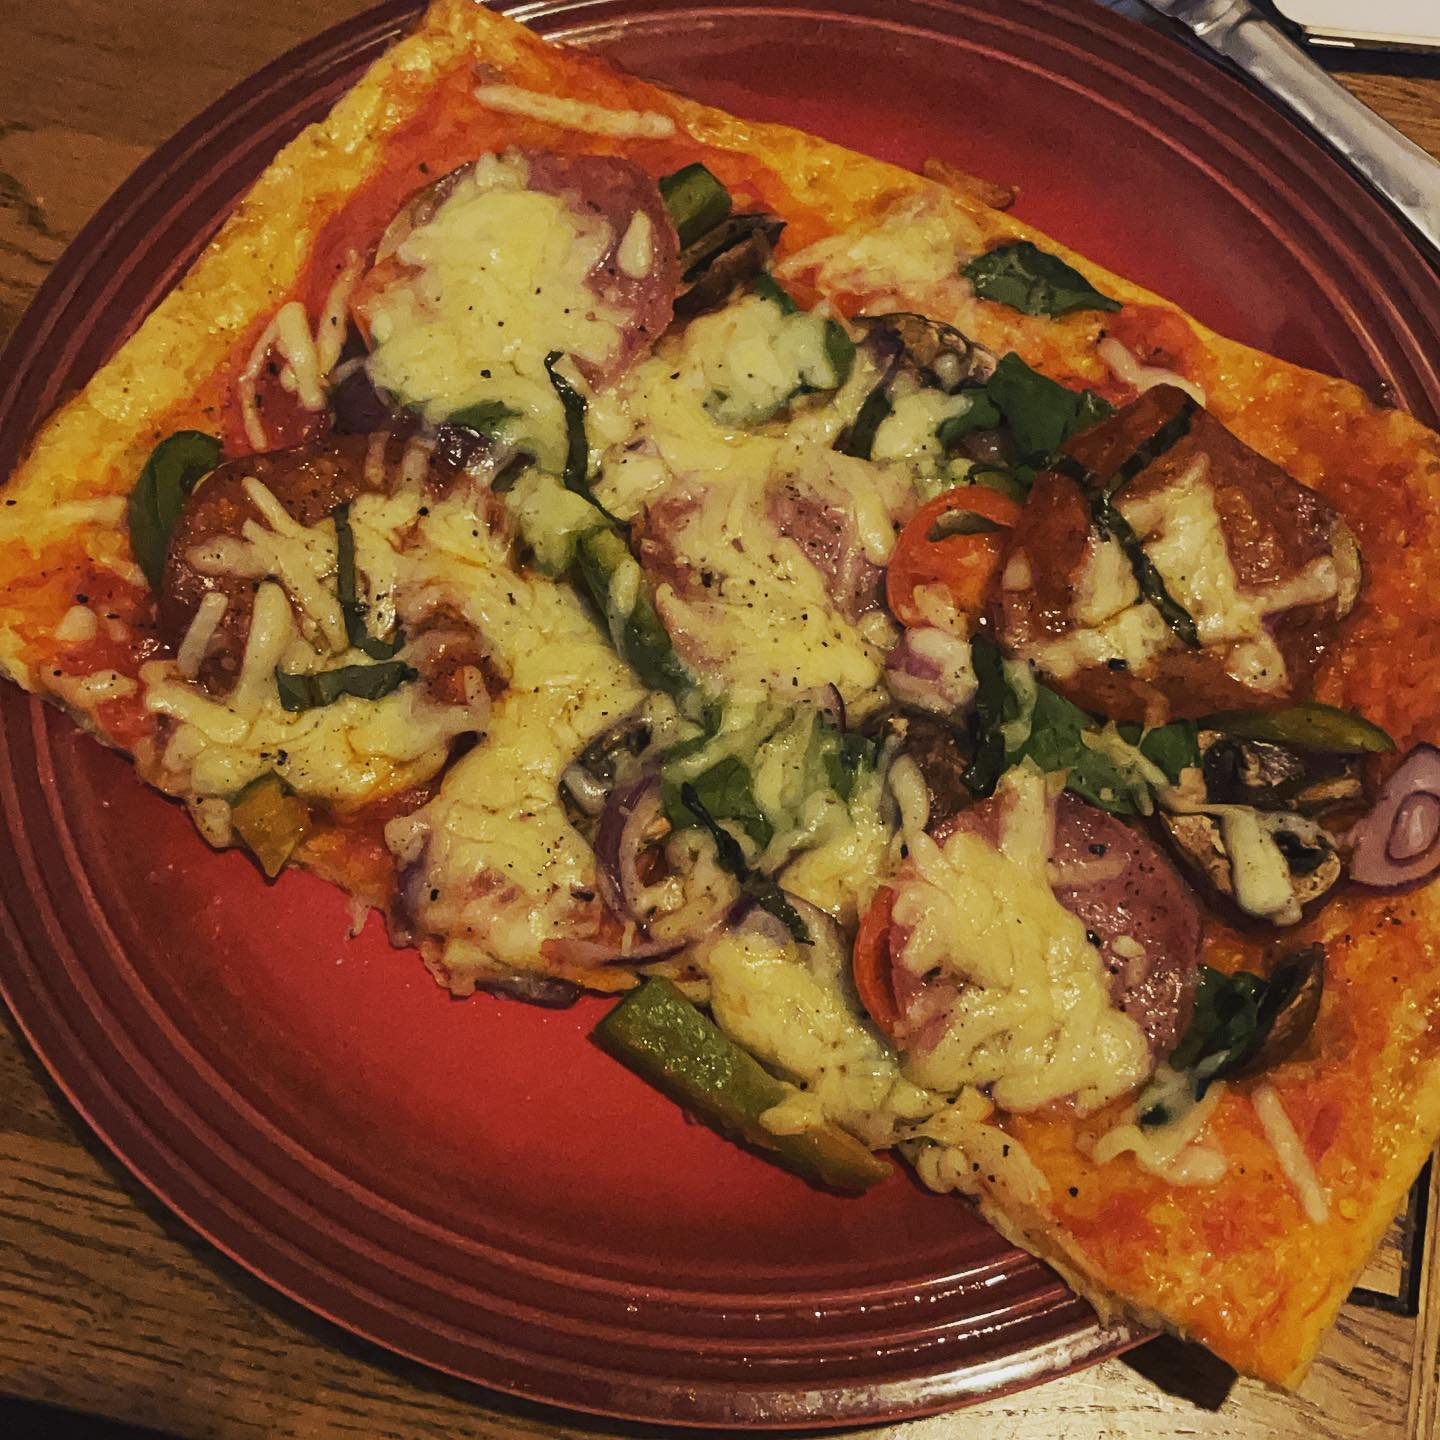 Homemade keto pizza!